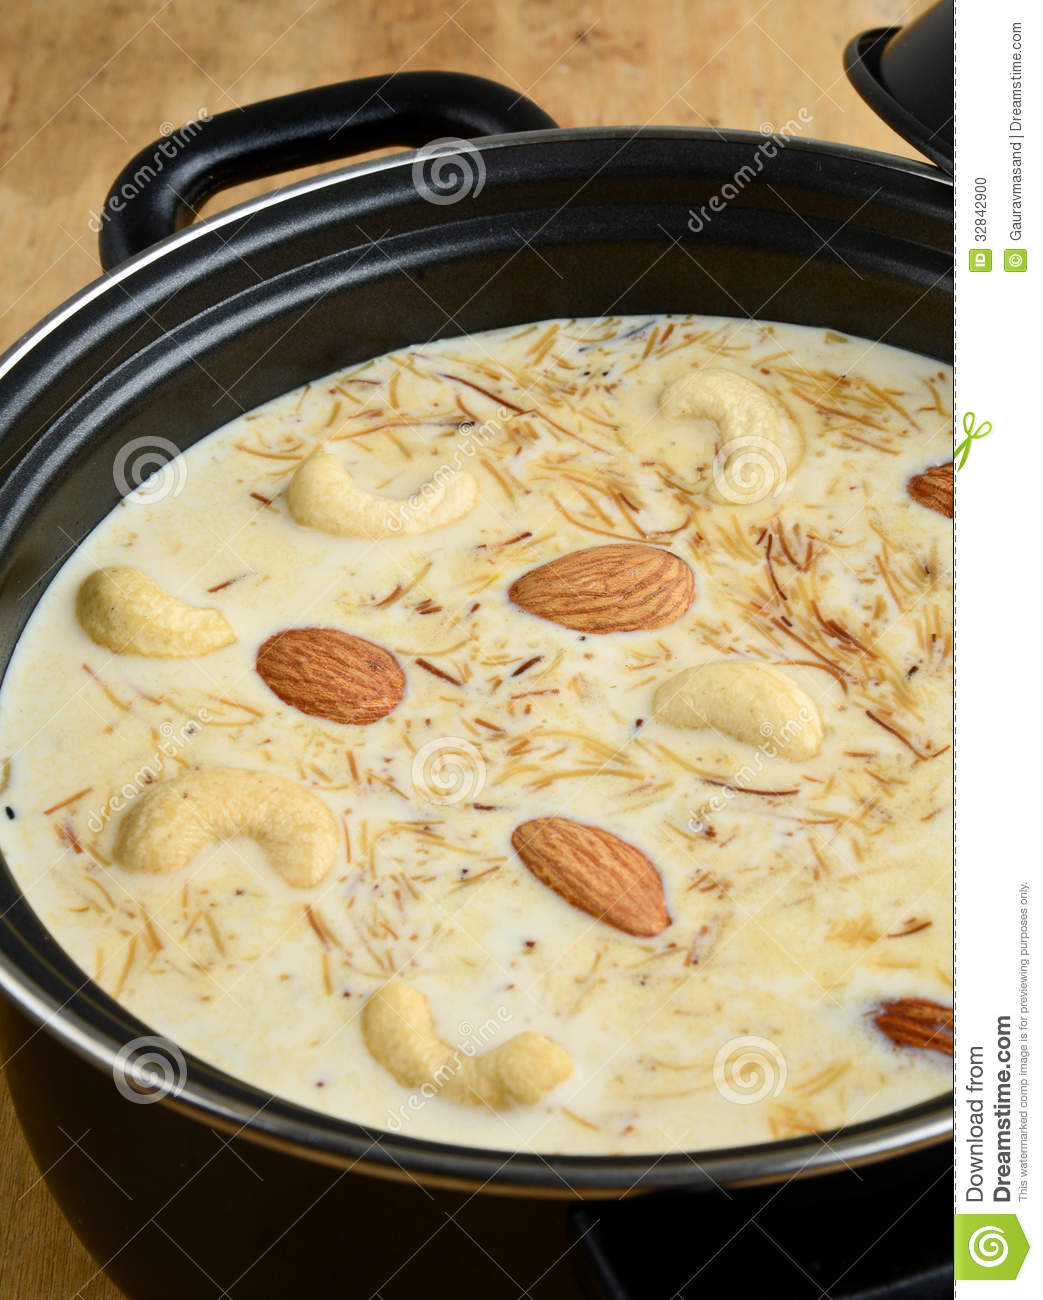 Indian desert kheer made of Rice,Milk,Saffron and nuts.